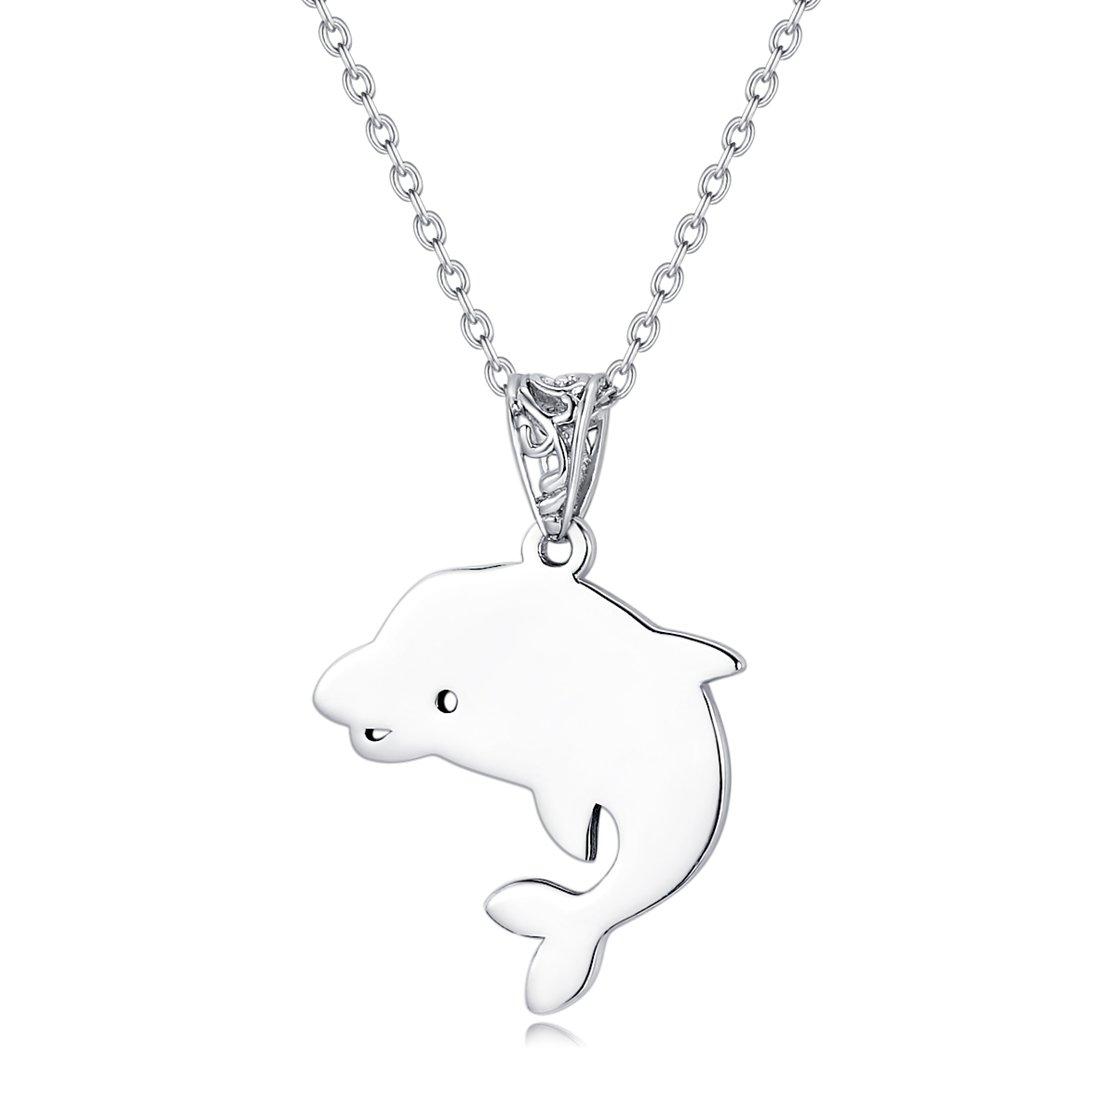 Fine Jewelry Sterling Silver Elegant Animal Charm Pendant Necklace, 18 inches